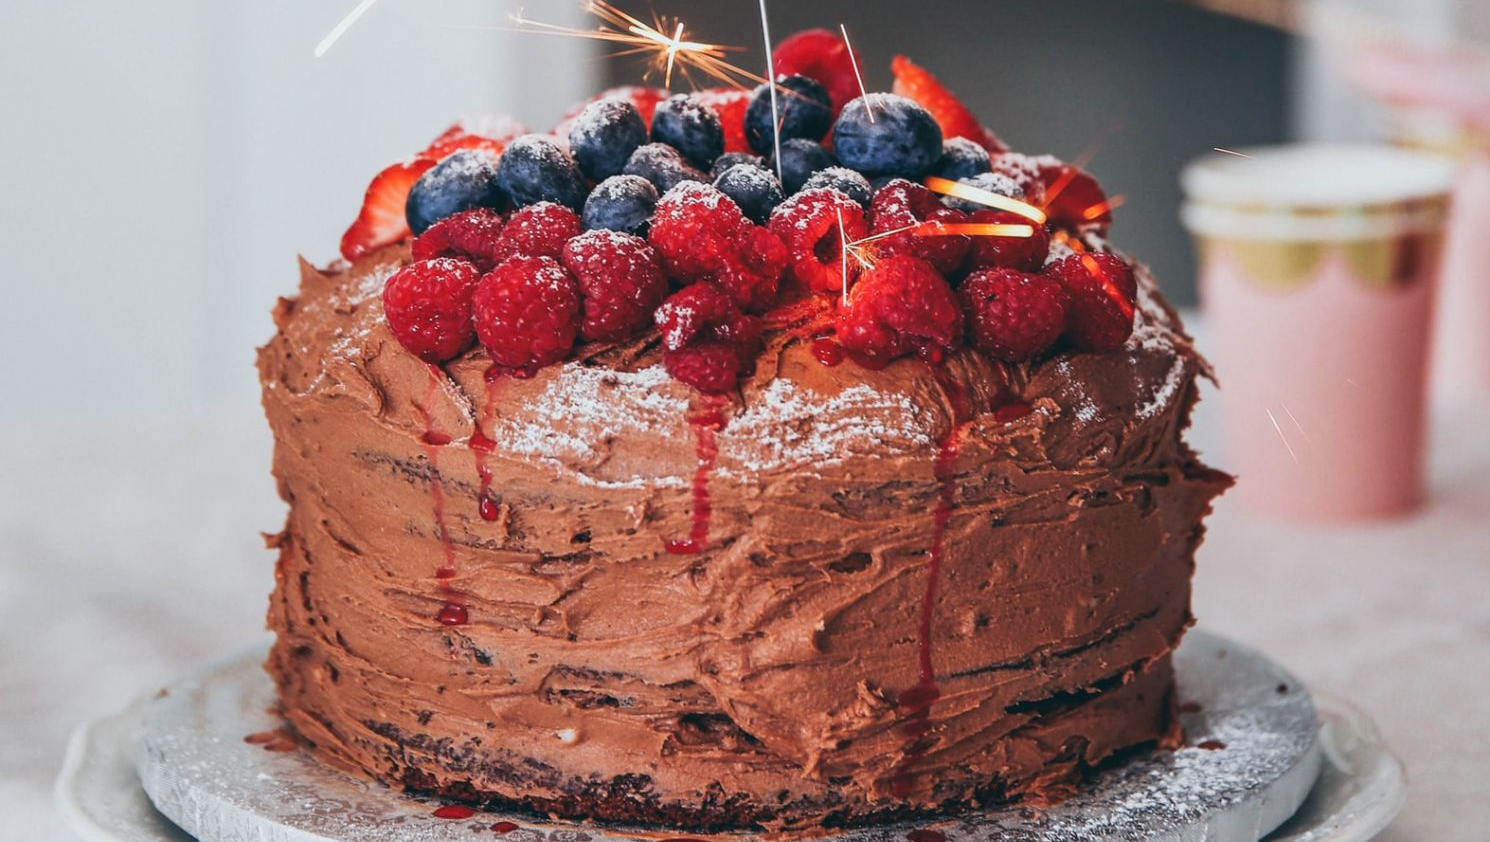 Fruit Topped Chocolate Cake